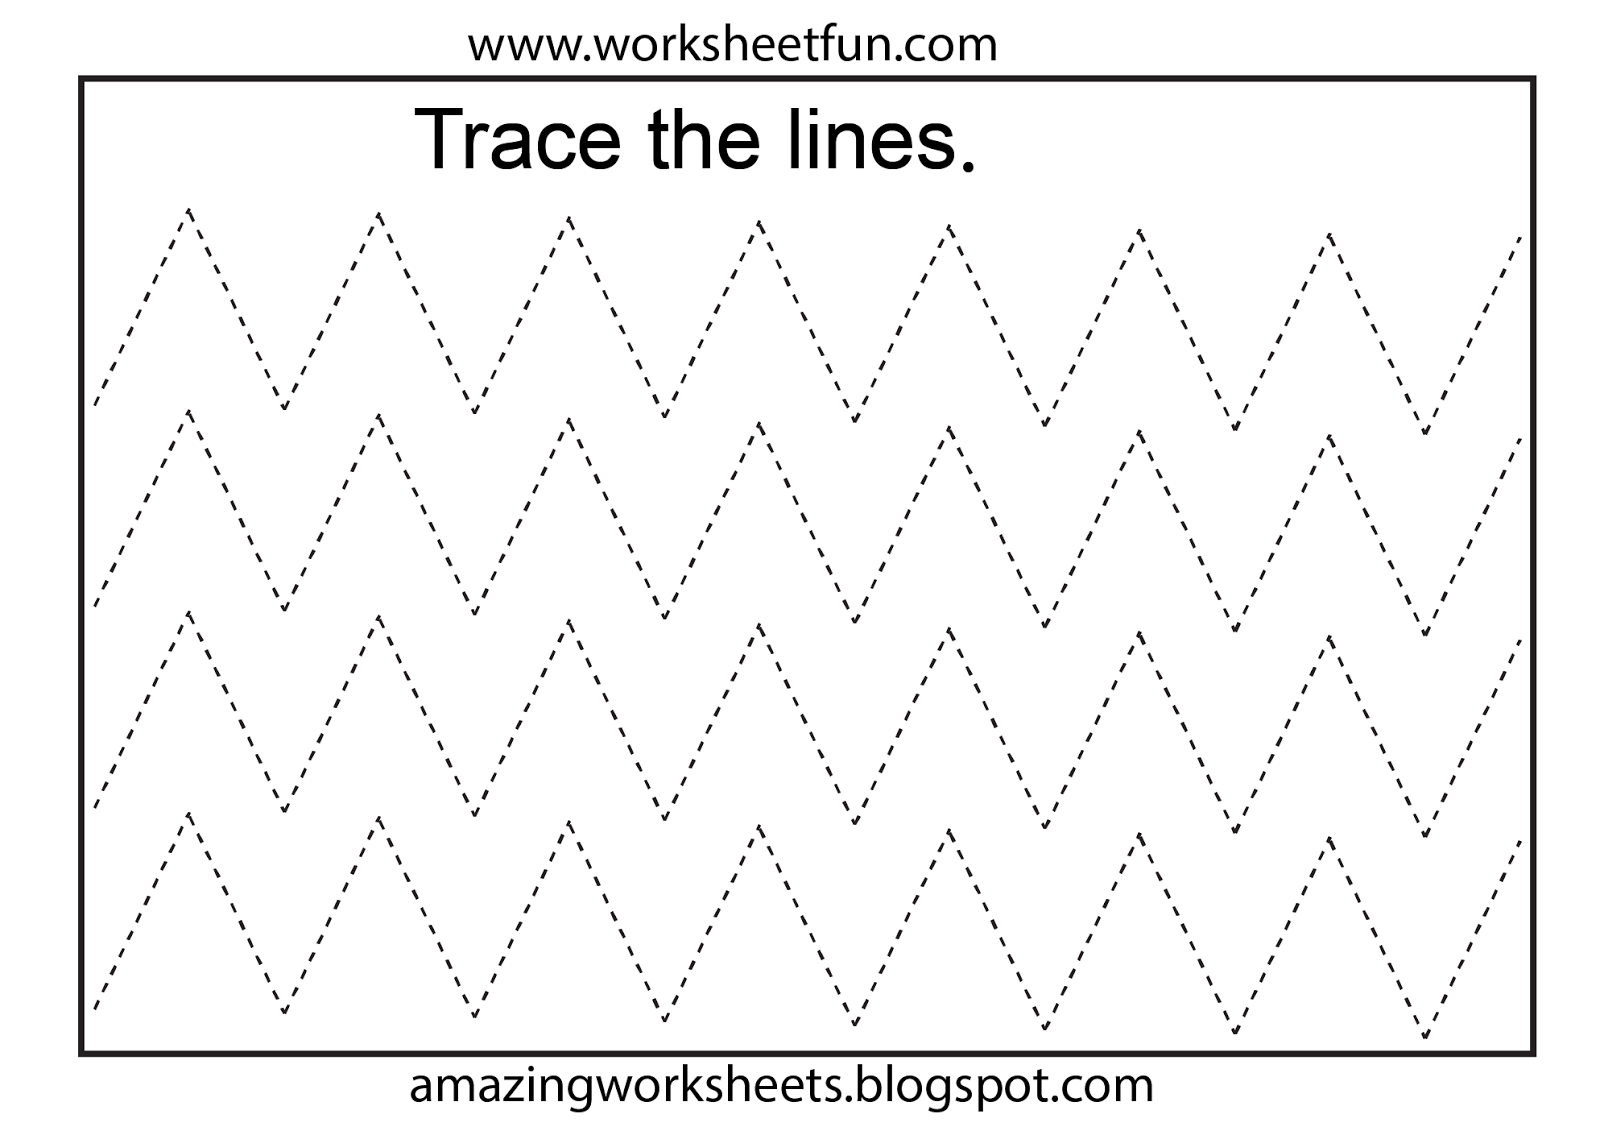 Worksheet Tracing Worksheets Printable 1000 images about home school on pinterest tracing worksheets free printable and preschool worksheets